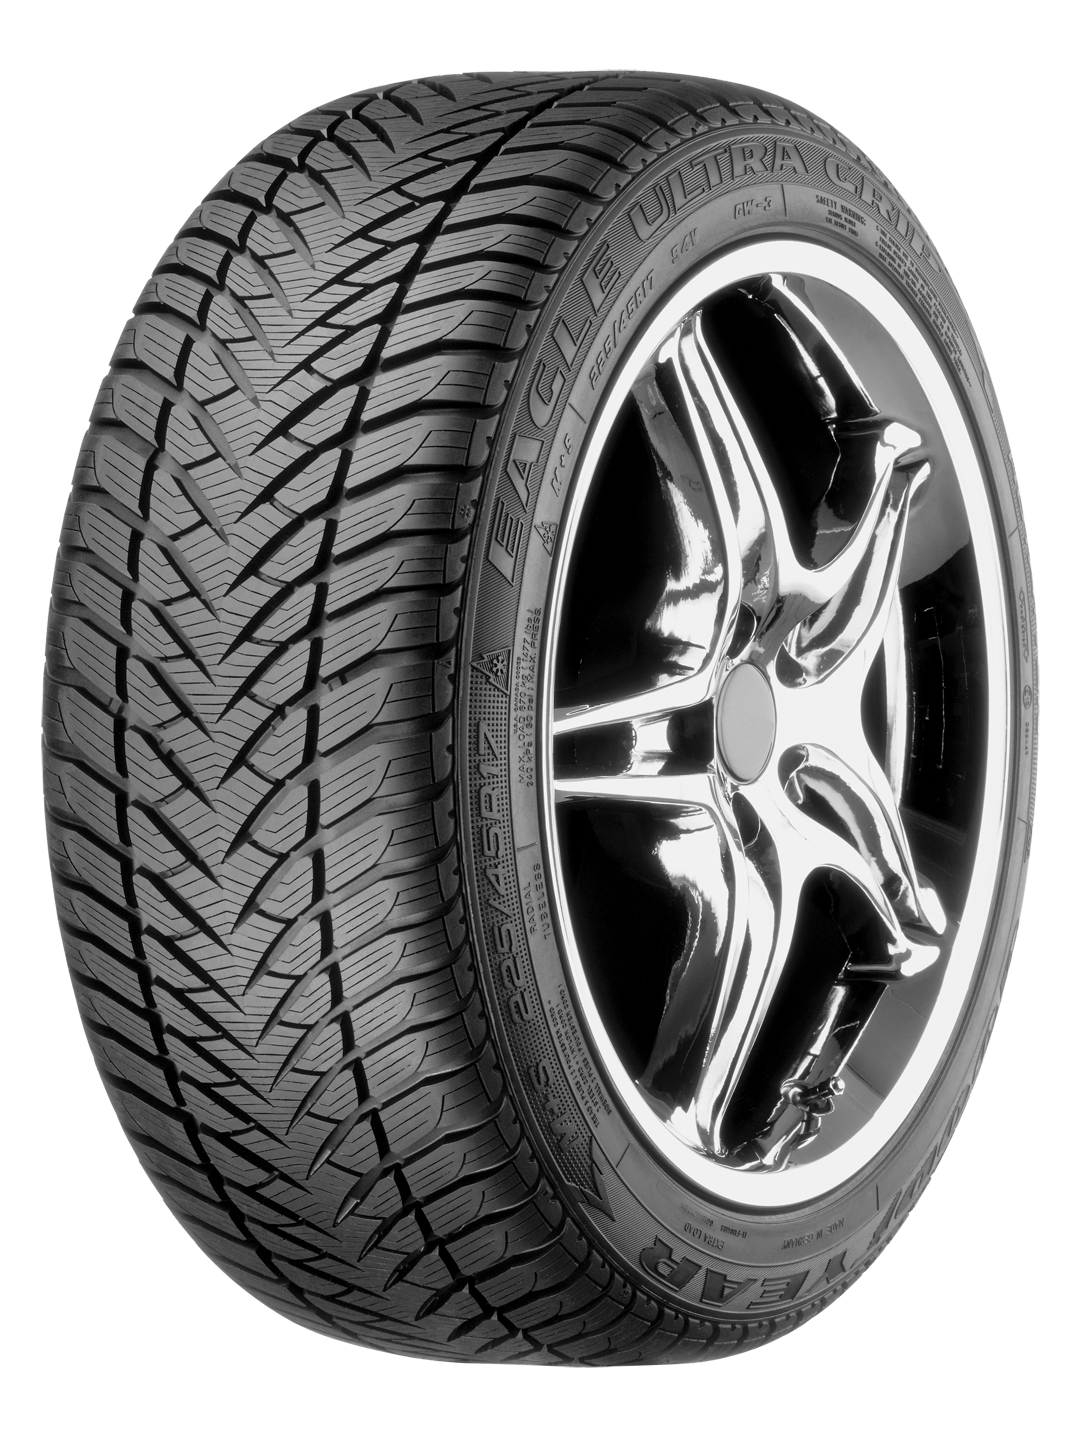 Proper Rotation Of Tires >> Police Tires | Goodyear Government Sales